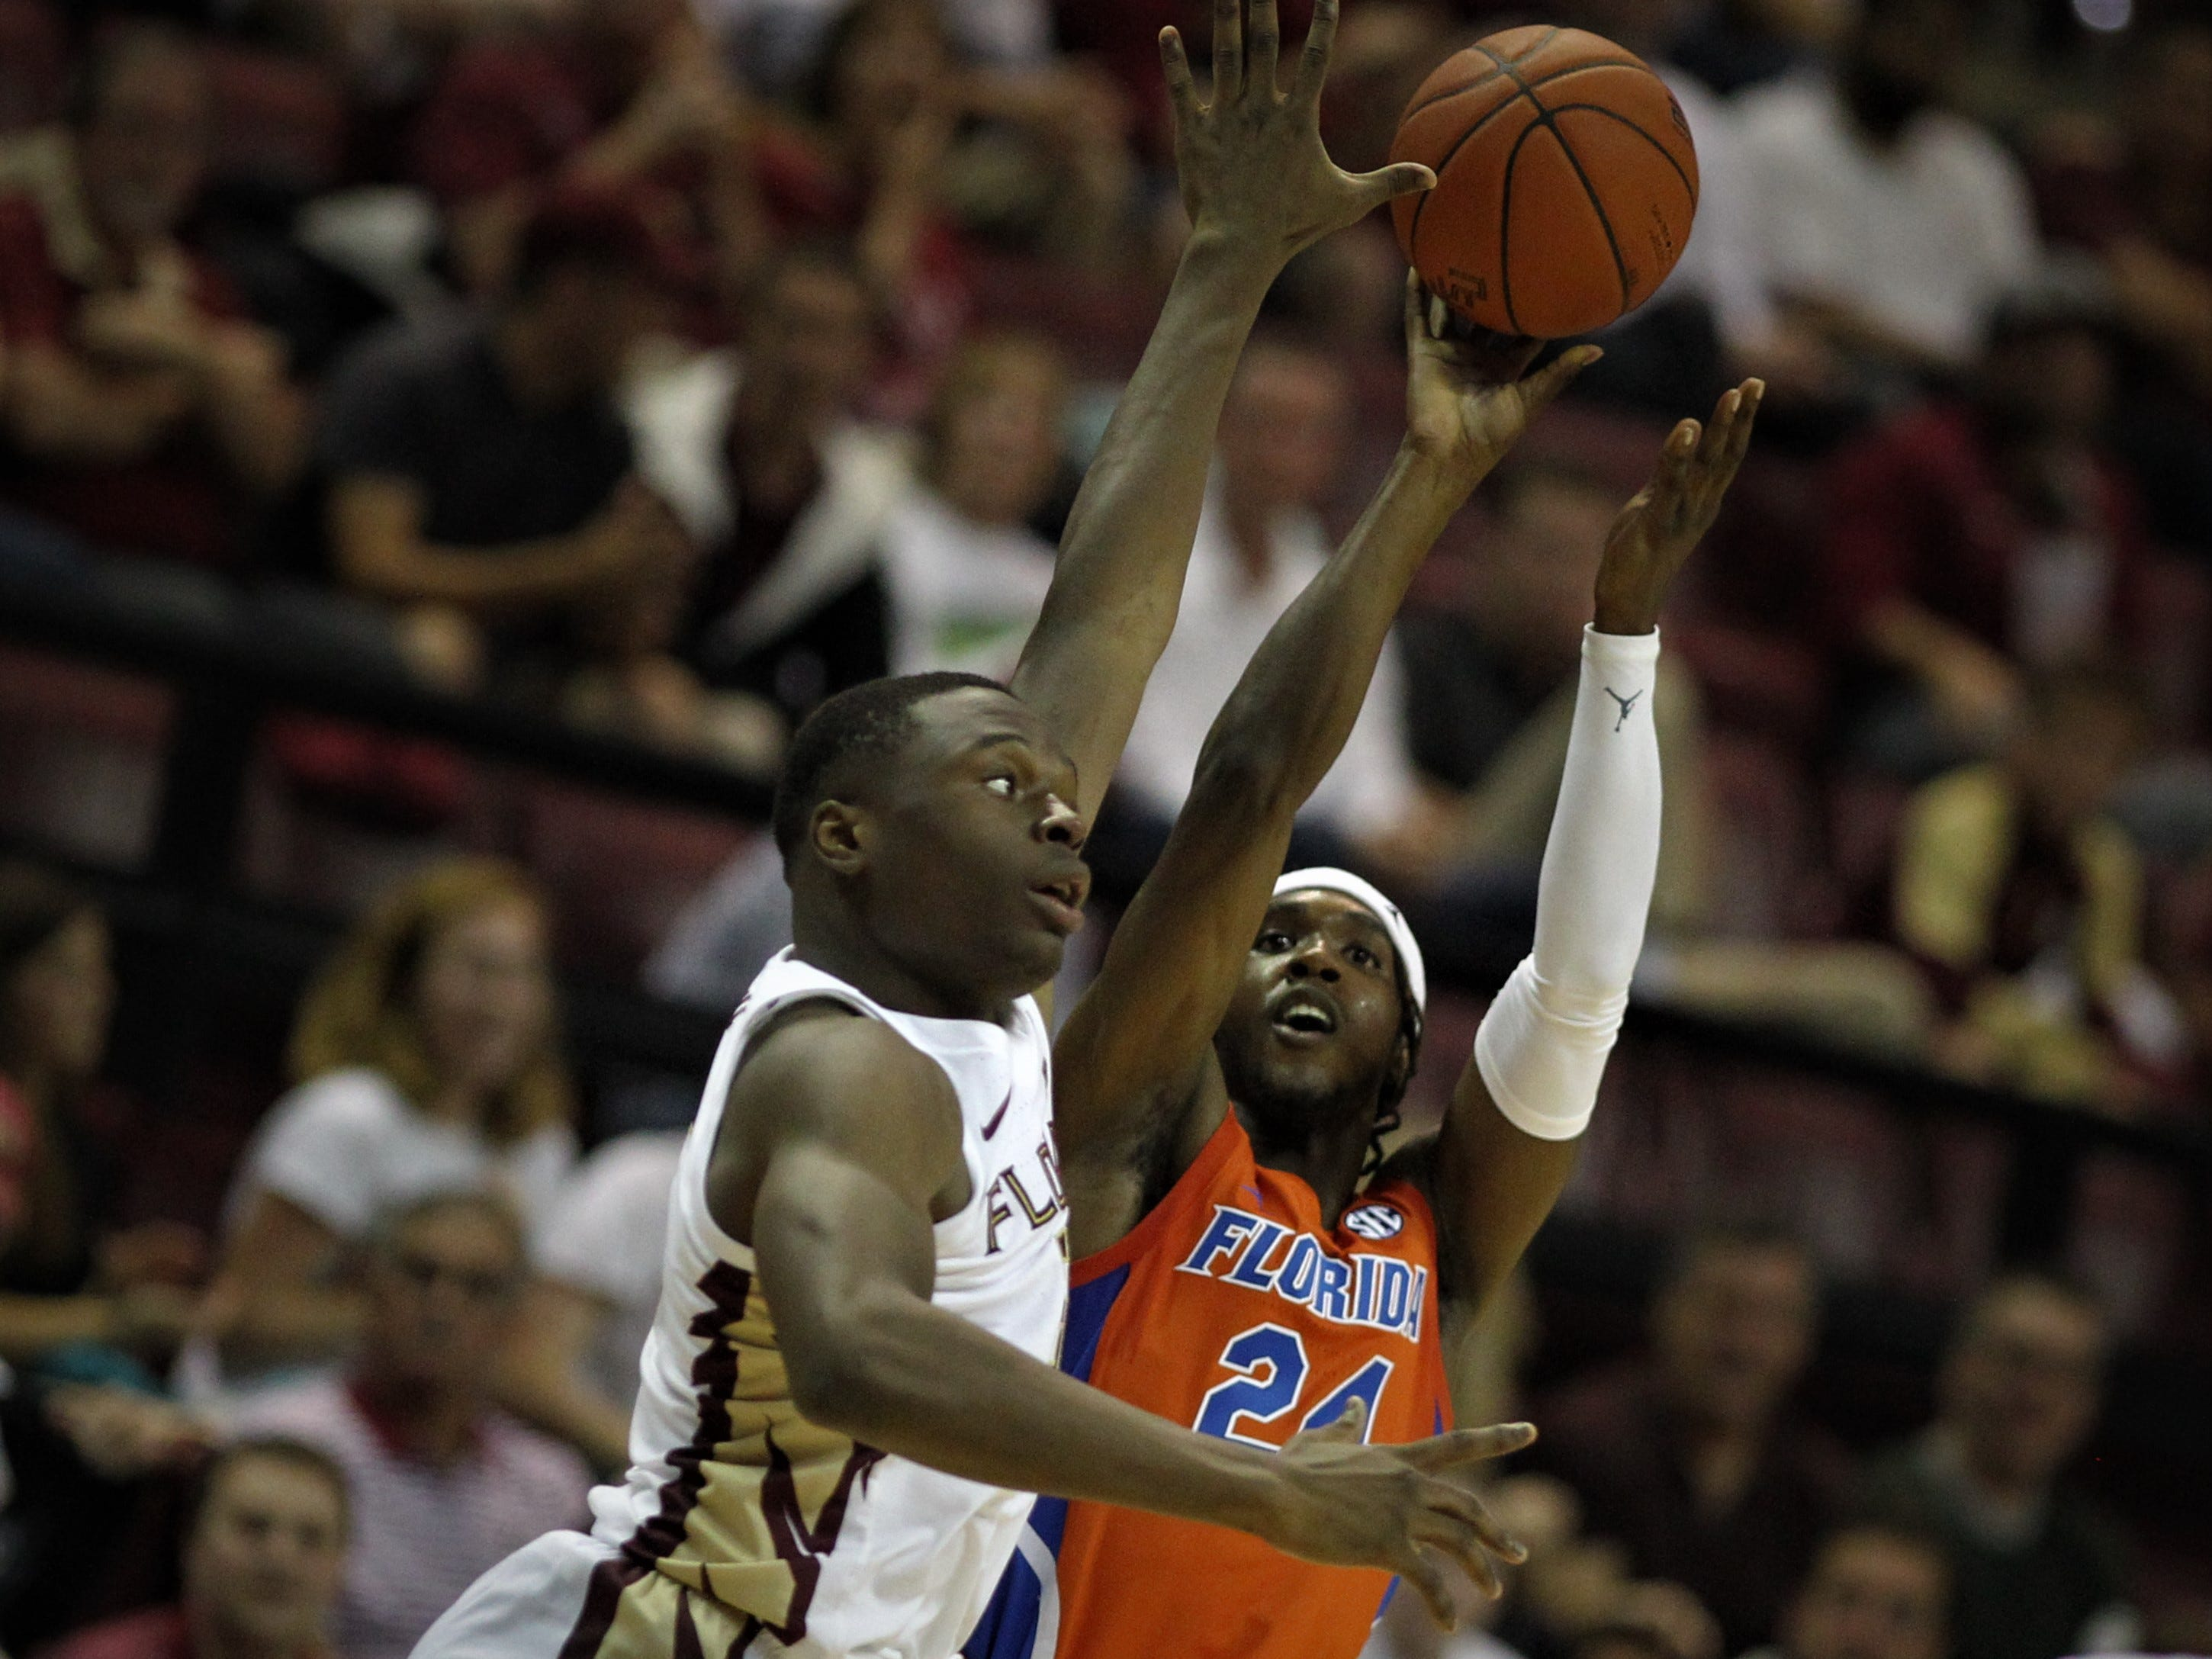 Florida State's Mfiondu Kabengele tries to disrupt the shot of Florida's Deaundrae Ballard during the Sunshine Showdown game Tuesday at the Tucker Civic Center.